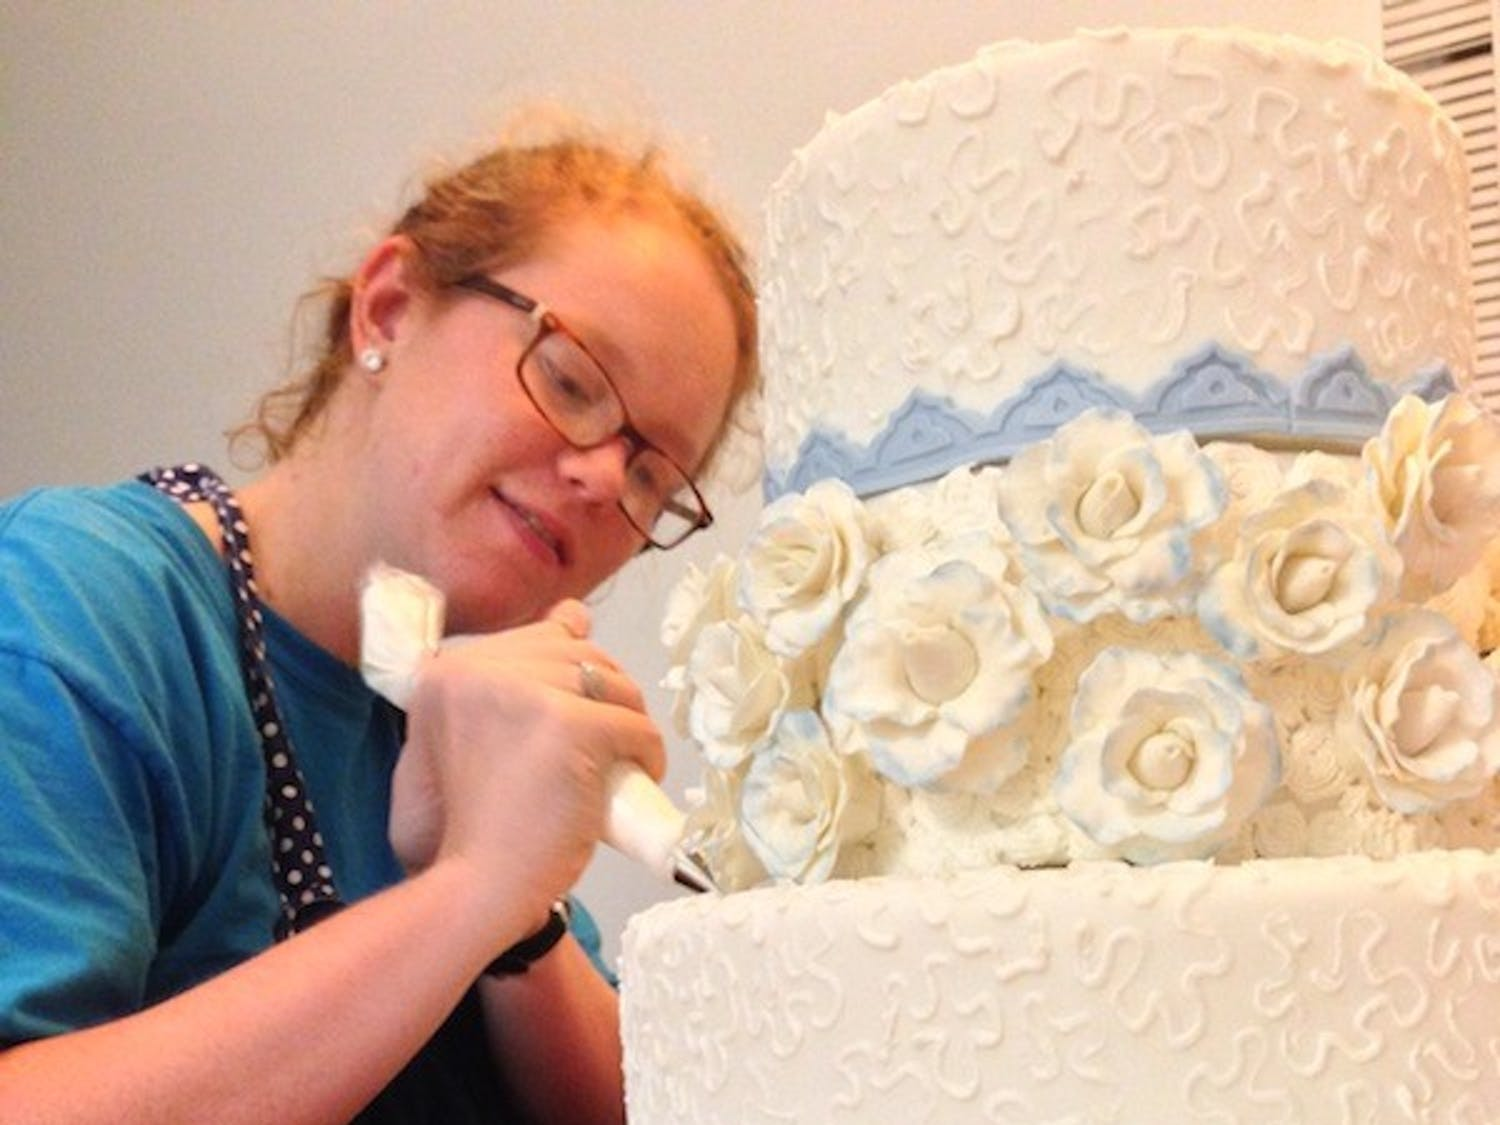 Elizabeth Graham is entering a wedding cake into the amateur cake category at the North Carolina State Fair.